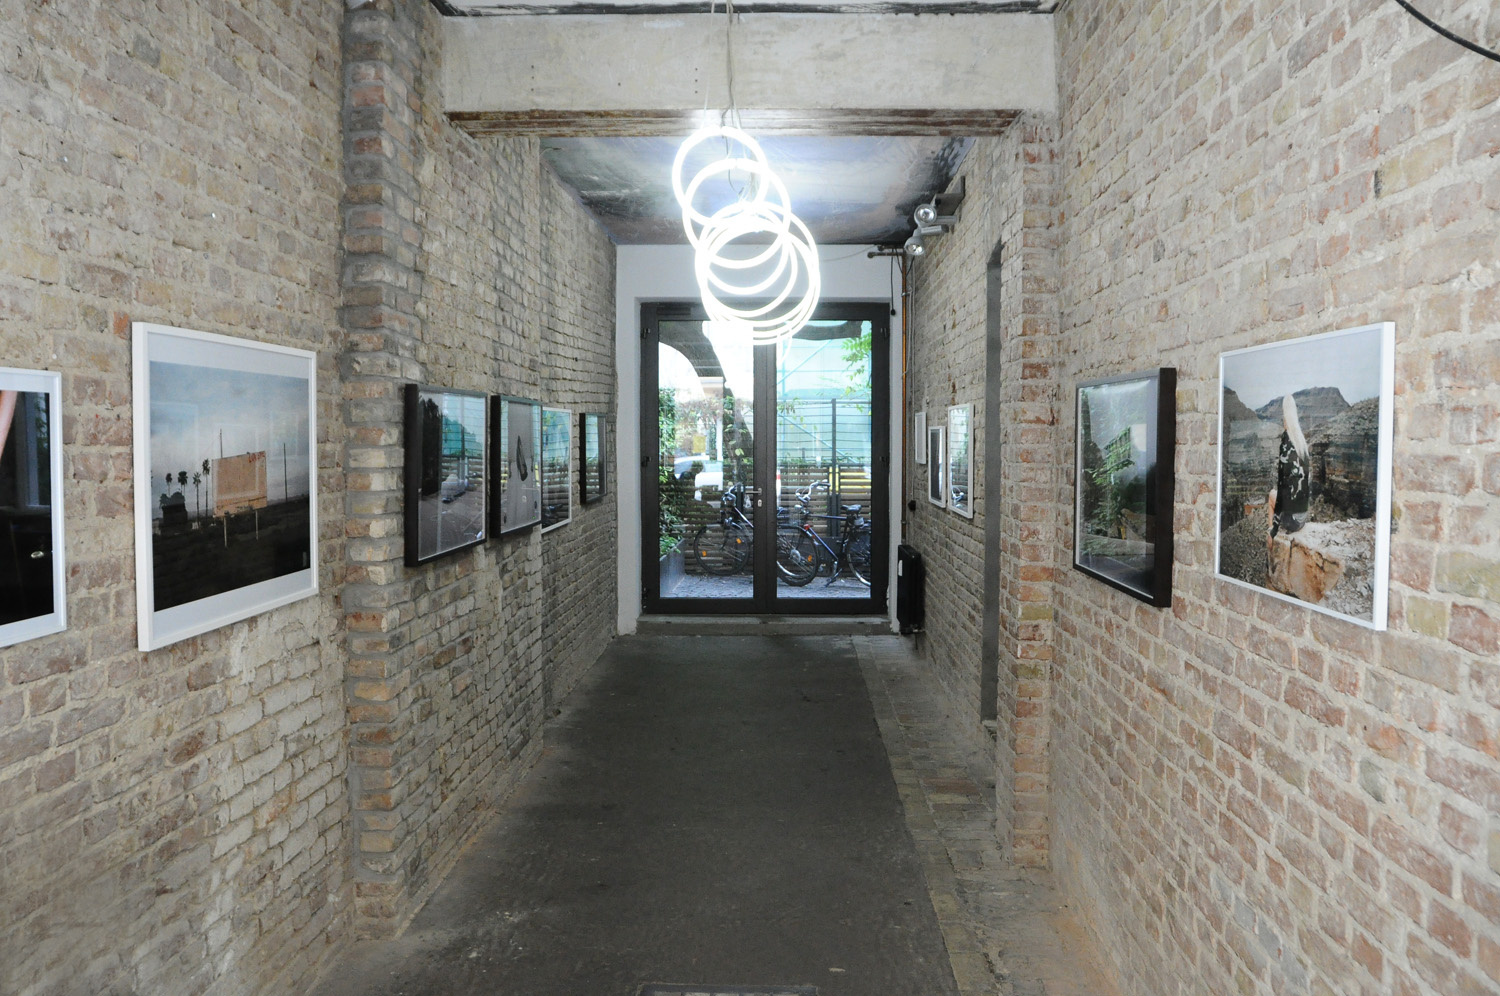 Exhibition view at Seven Star Gallery